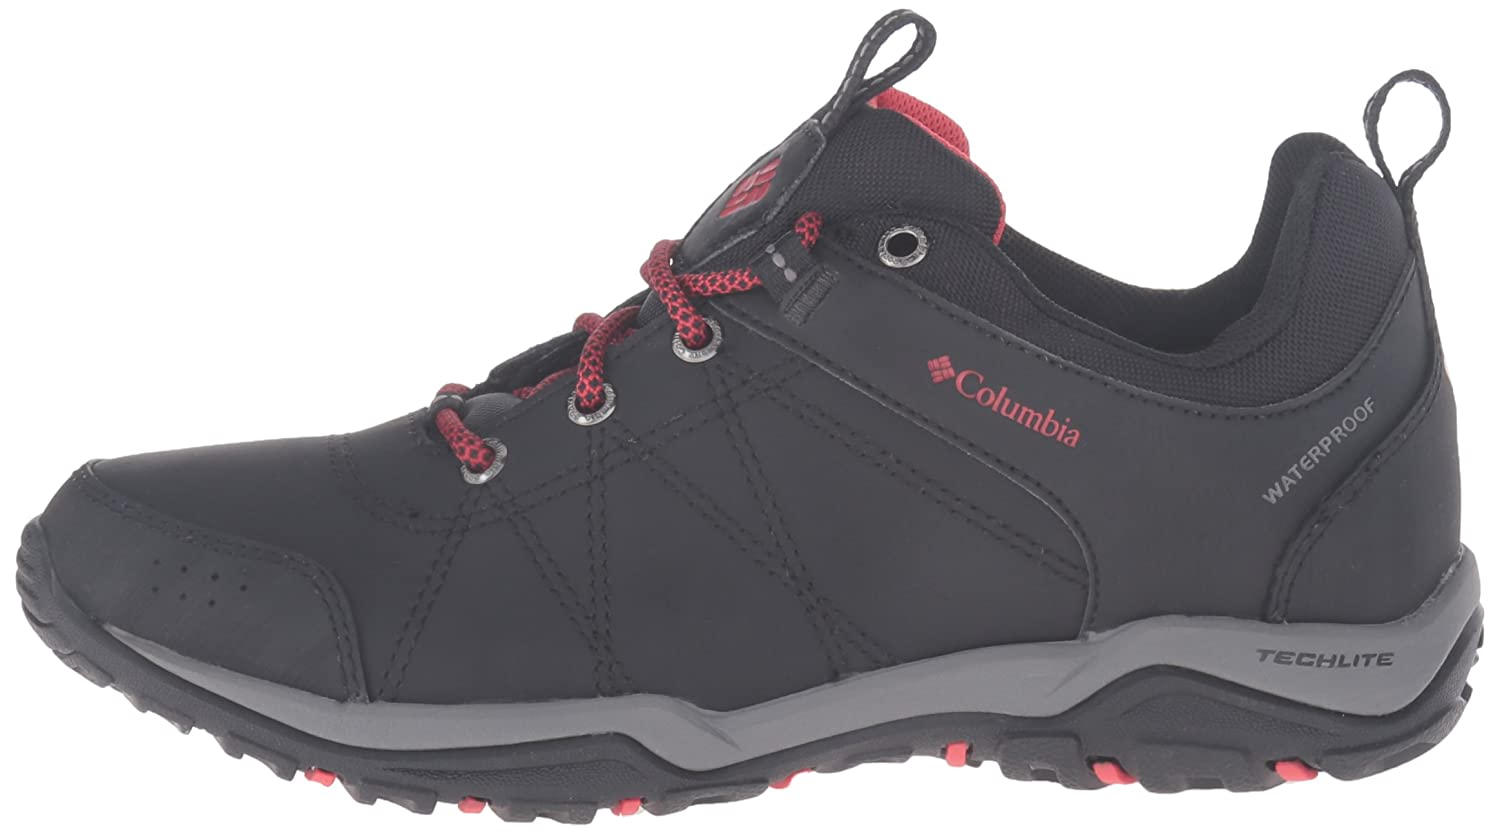 Columbia Damen Fire Venture Outdoor Waterproof Outdoor Venture Fitnessschuhe 2699ca